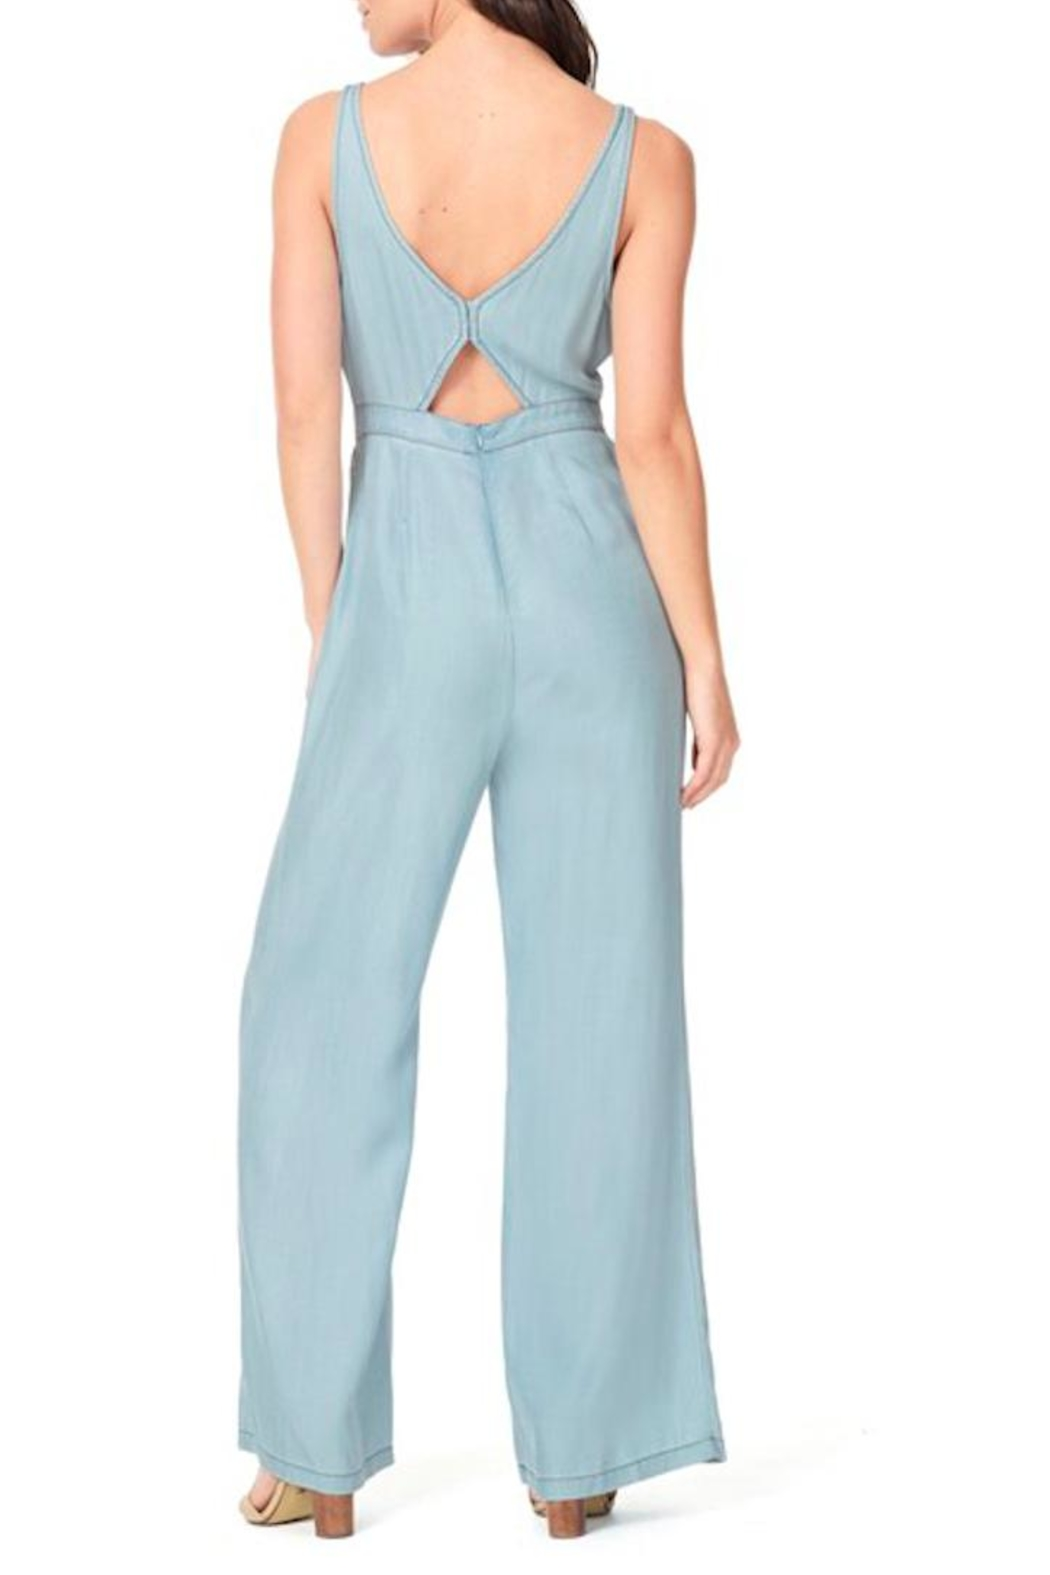 Cupcakes & Cashmere Deven Jumpsuit - Side Cropped Image